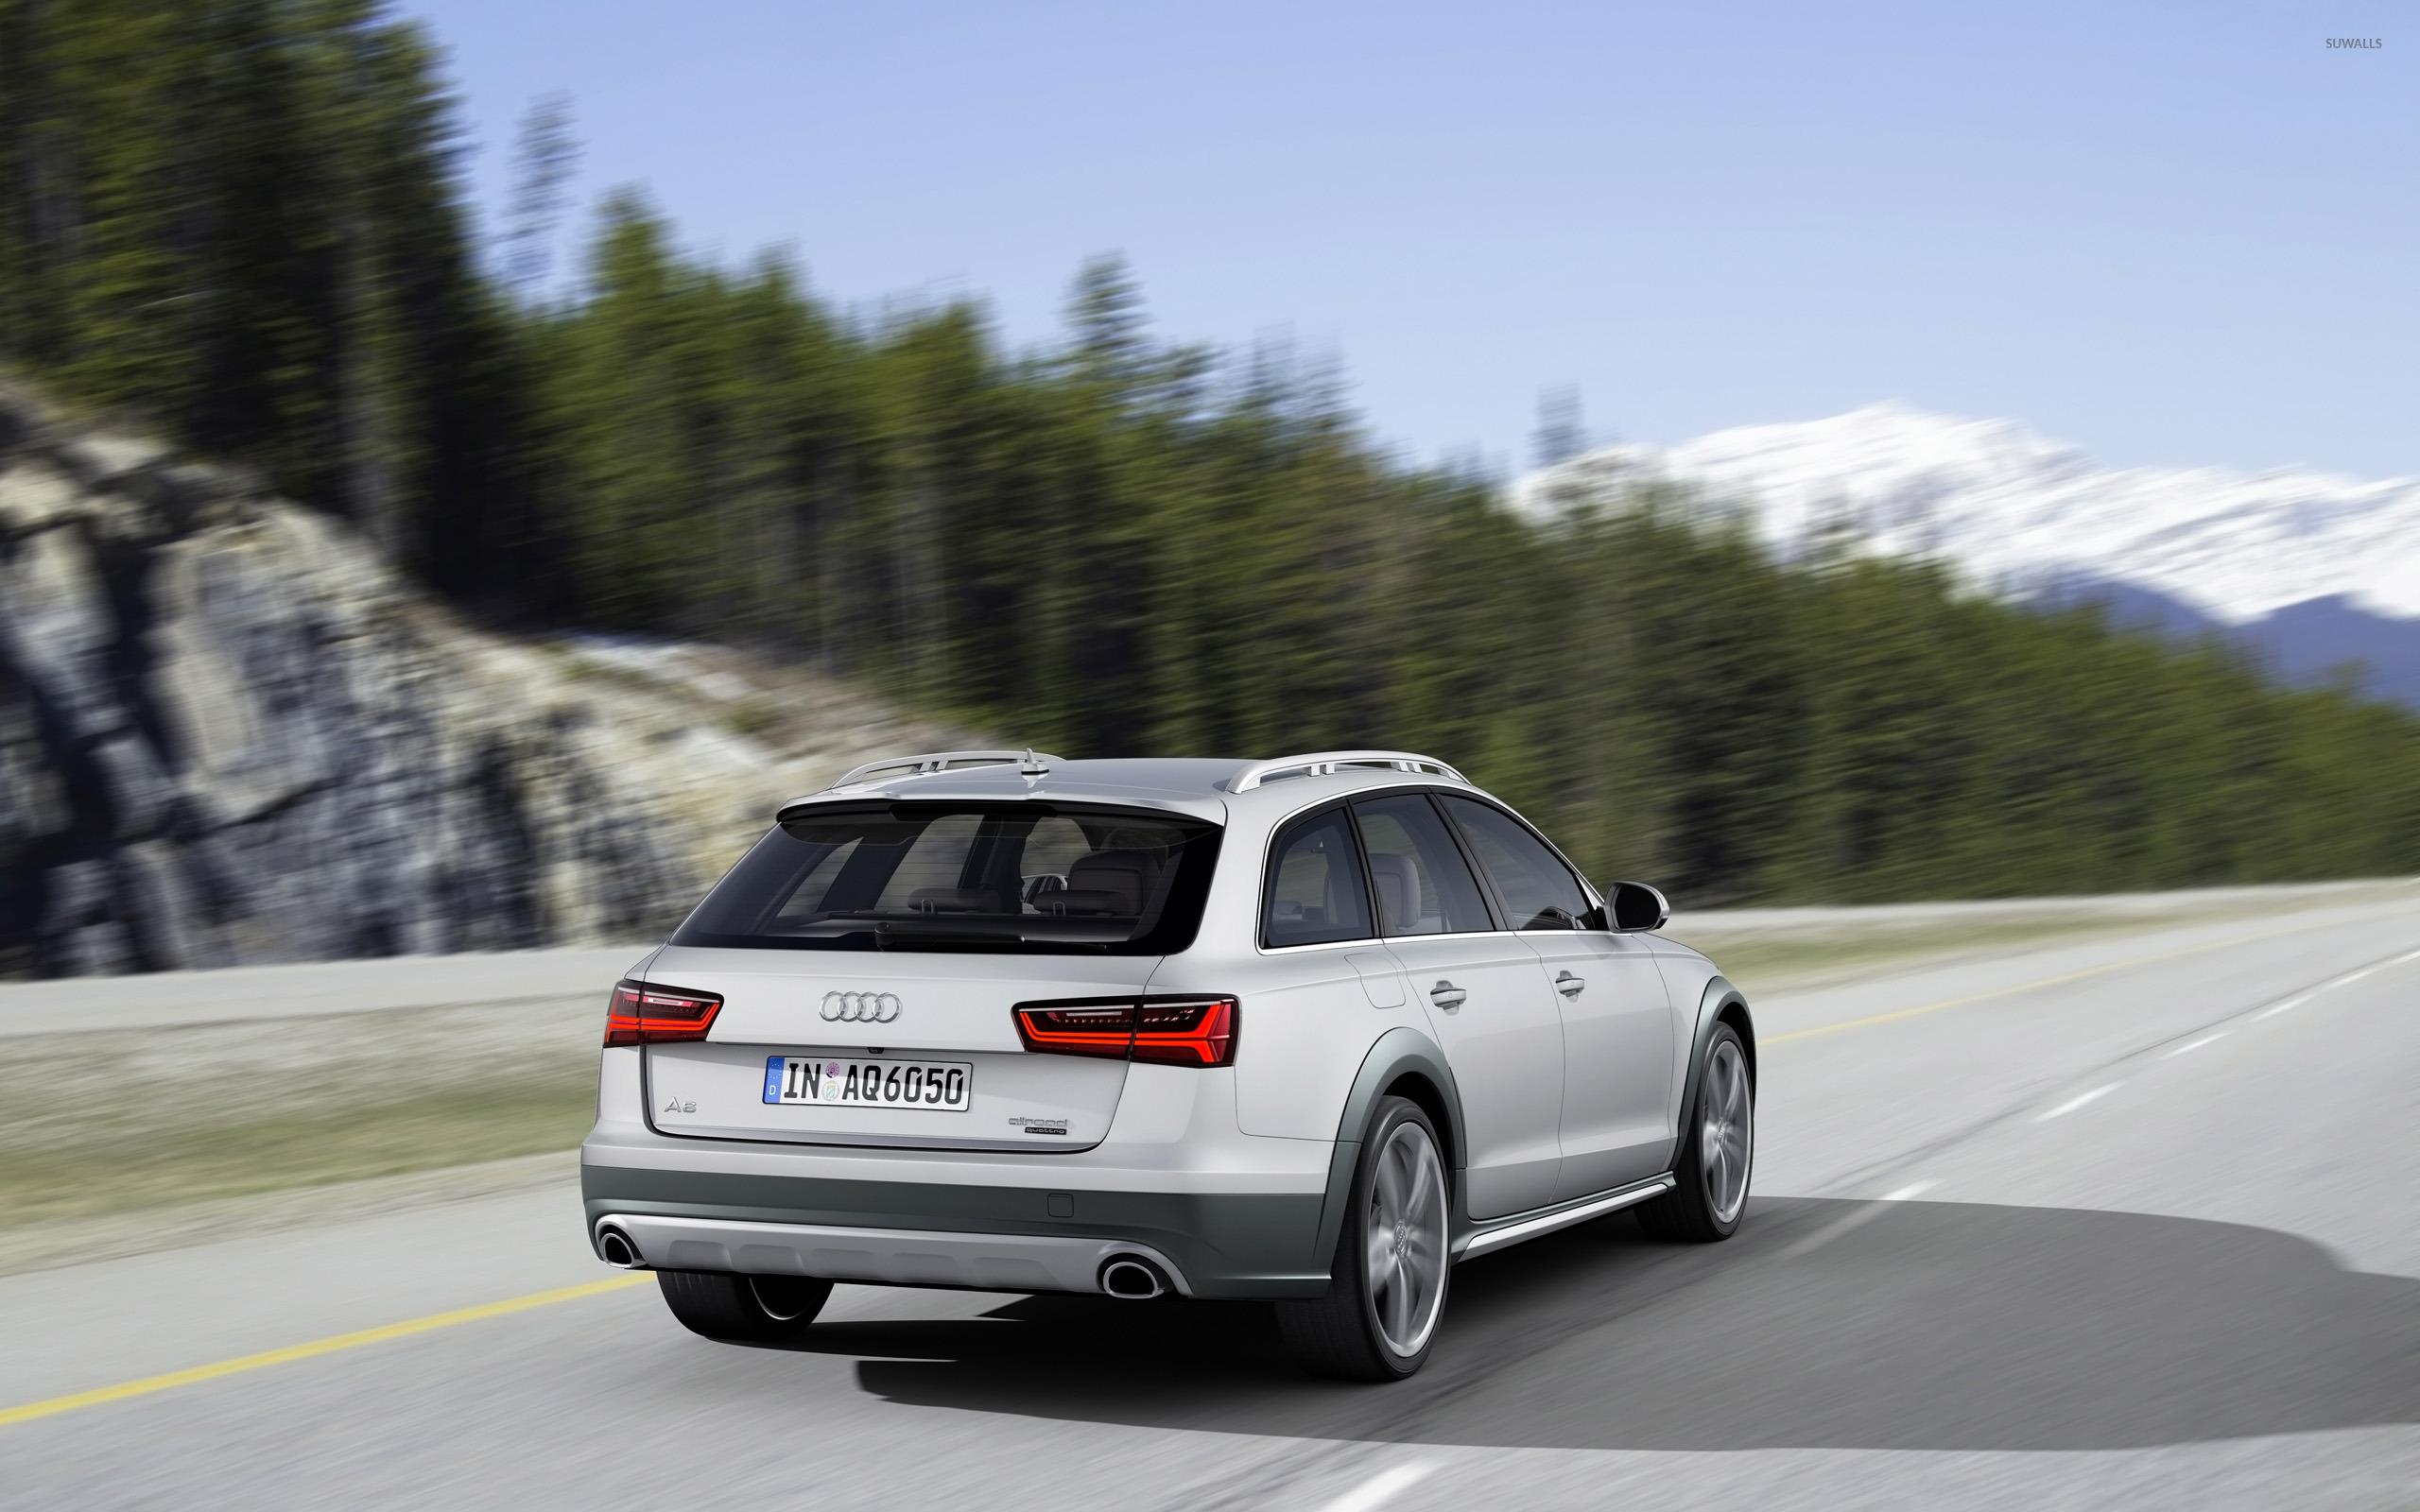 2015 Audi A6 allroad quattro [3] wallpaper - Car wallpapers - #40890